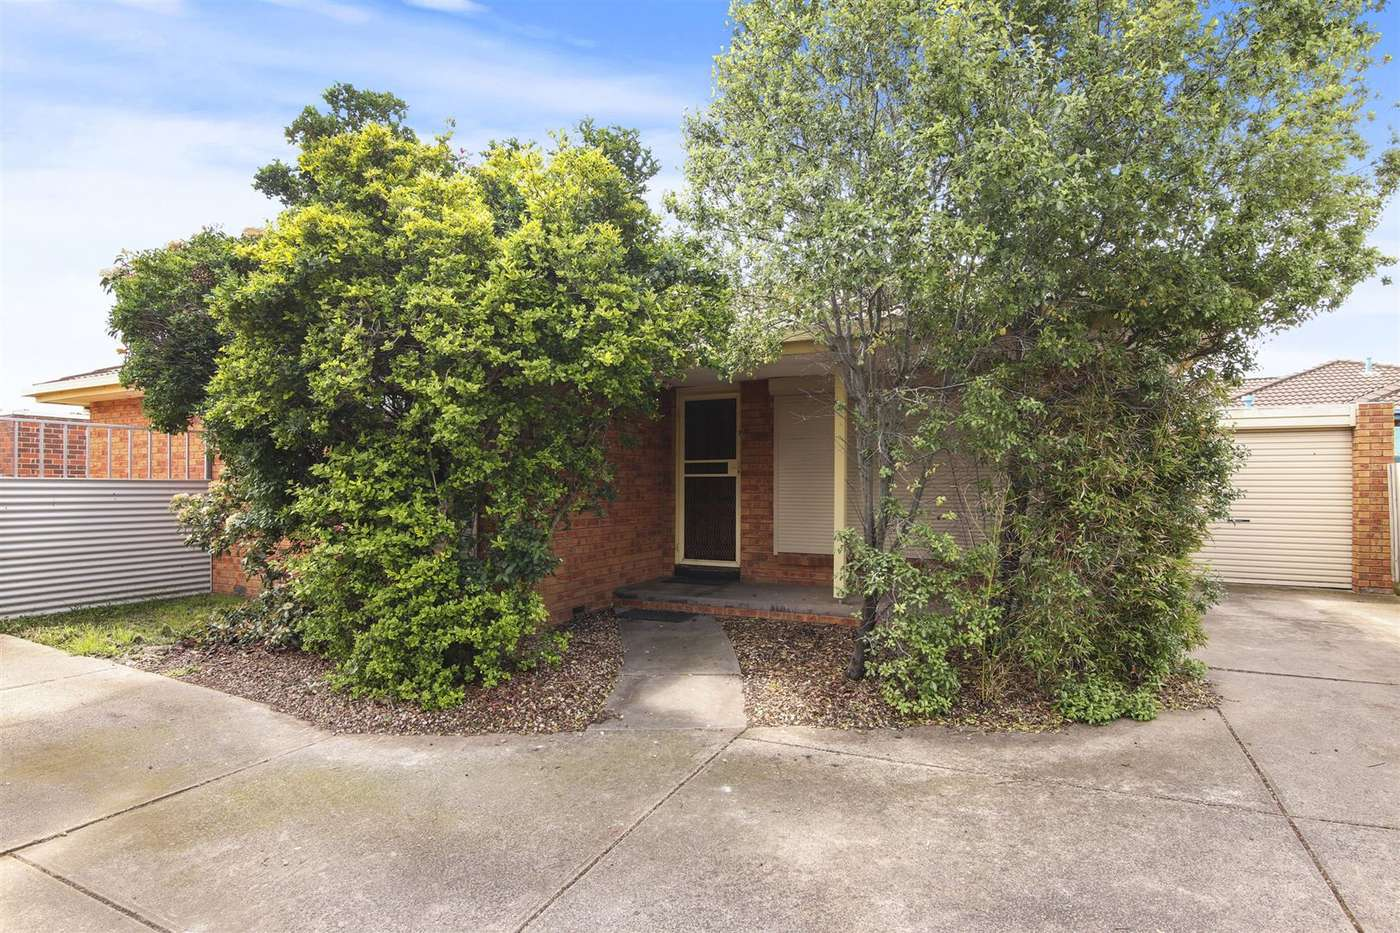 Main view of Homely unit listing, 2/174 Purnell Road, Corio, VIC 3214